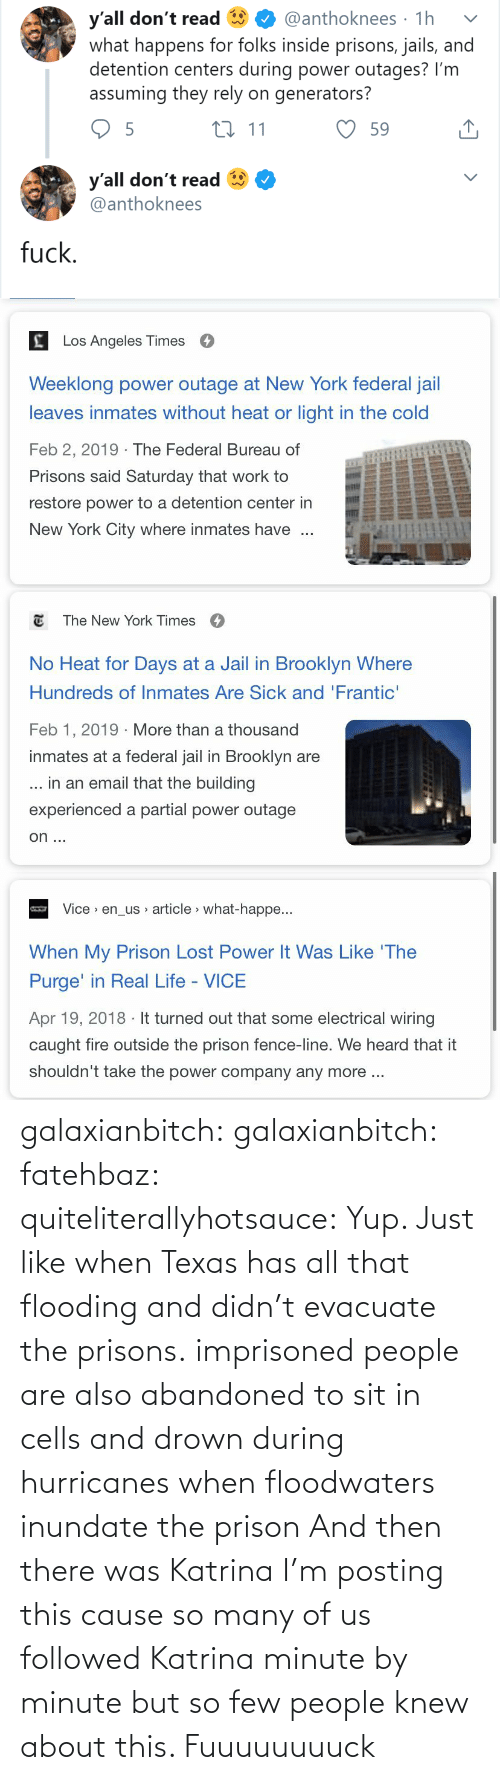 building: y'all don't read  what happens for folks inside prisons, jails, and  detention centers during power outages? I'm  assuming they rely on generators?  @anthoknees · 1h  27 11  59  y'all don't read  @anthoknees  fuck.   Los Angeles Times  Weeklong power outage at New York federal jail  leaves inmates without heat or light in the cold  Feb 2, 2019 · The Federal Bureau of  Prisons said Saturday that work to  restore power to a detention center in  New York City where inmates have   E The New York Times  O  No Heat for Days at a Jail in Brooklyn Where  Hundreds of Inmates Are Sick and 'Frantic'  Feb 1, 2019 · More than a thousand  inmates at a federal jail in Brooklyn are  ... in an email that the building  experienced a partial power outage  on ...   Vice > en_us article > what-happe...  When My Prison Lost Power It Was Like 'The  Purge' in Real Life - VICE  Apr 19, 2018 · It turned out that some electrical wiring  caught fire outside the prison fence-line. We heard that it  shouldn't take the power company any more .. galaxianbitch: galaxianbitch:   fatehbaz:  quiteliterallyhotsauce:   Yup. Just like when Texas has all that flooding and didn't evacuate the prisons.   imprisoned people are also abandoned to sit in cells and drown during hurricanes when floodwaters inundate the prison   And then there was Katrina        I'm posting this cause so many of us followed Katrina minute by minute but so few people knew about this.    Fuuuuuuuuck